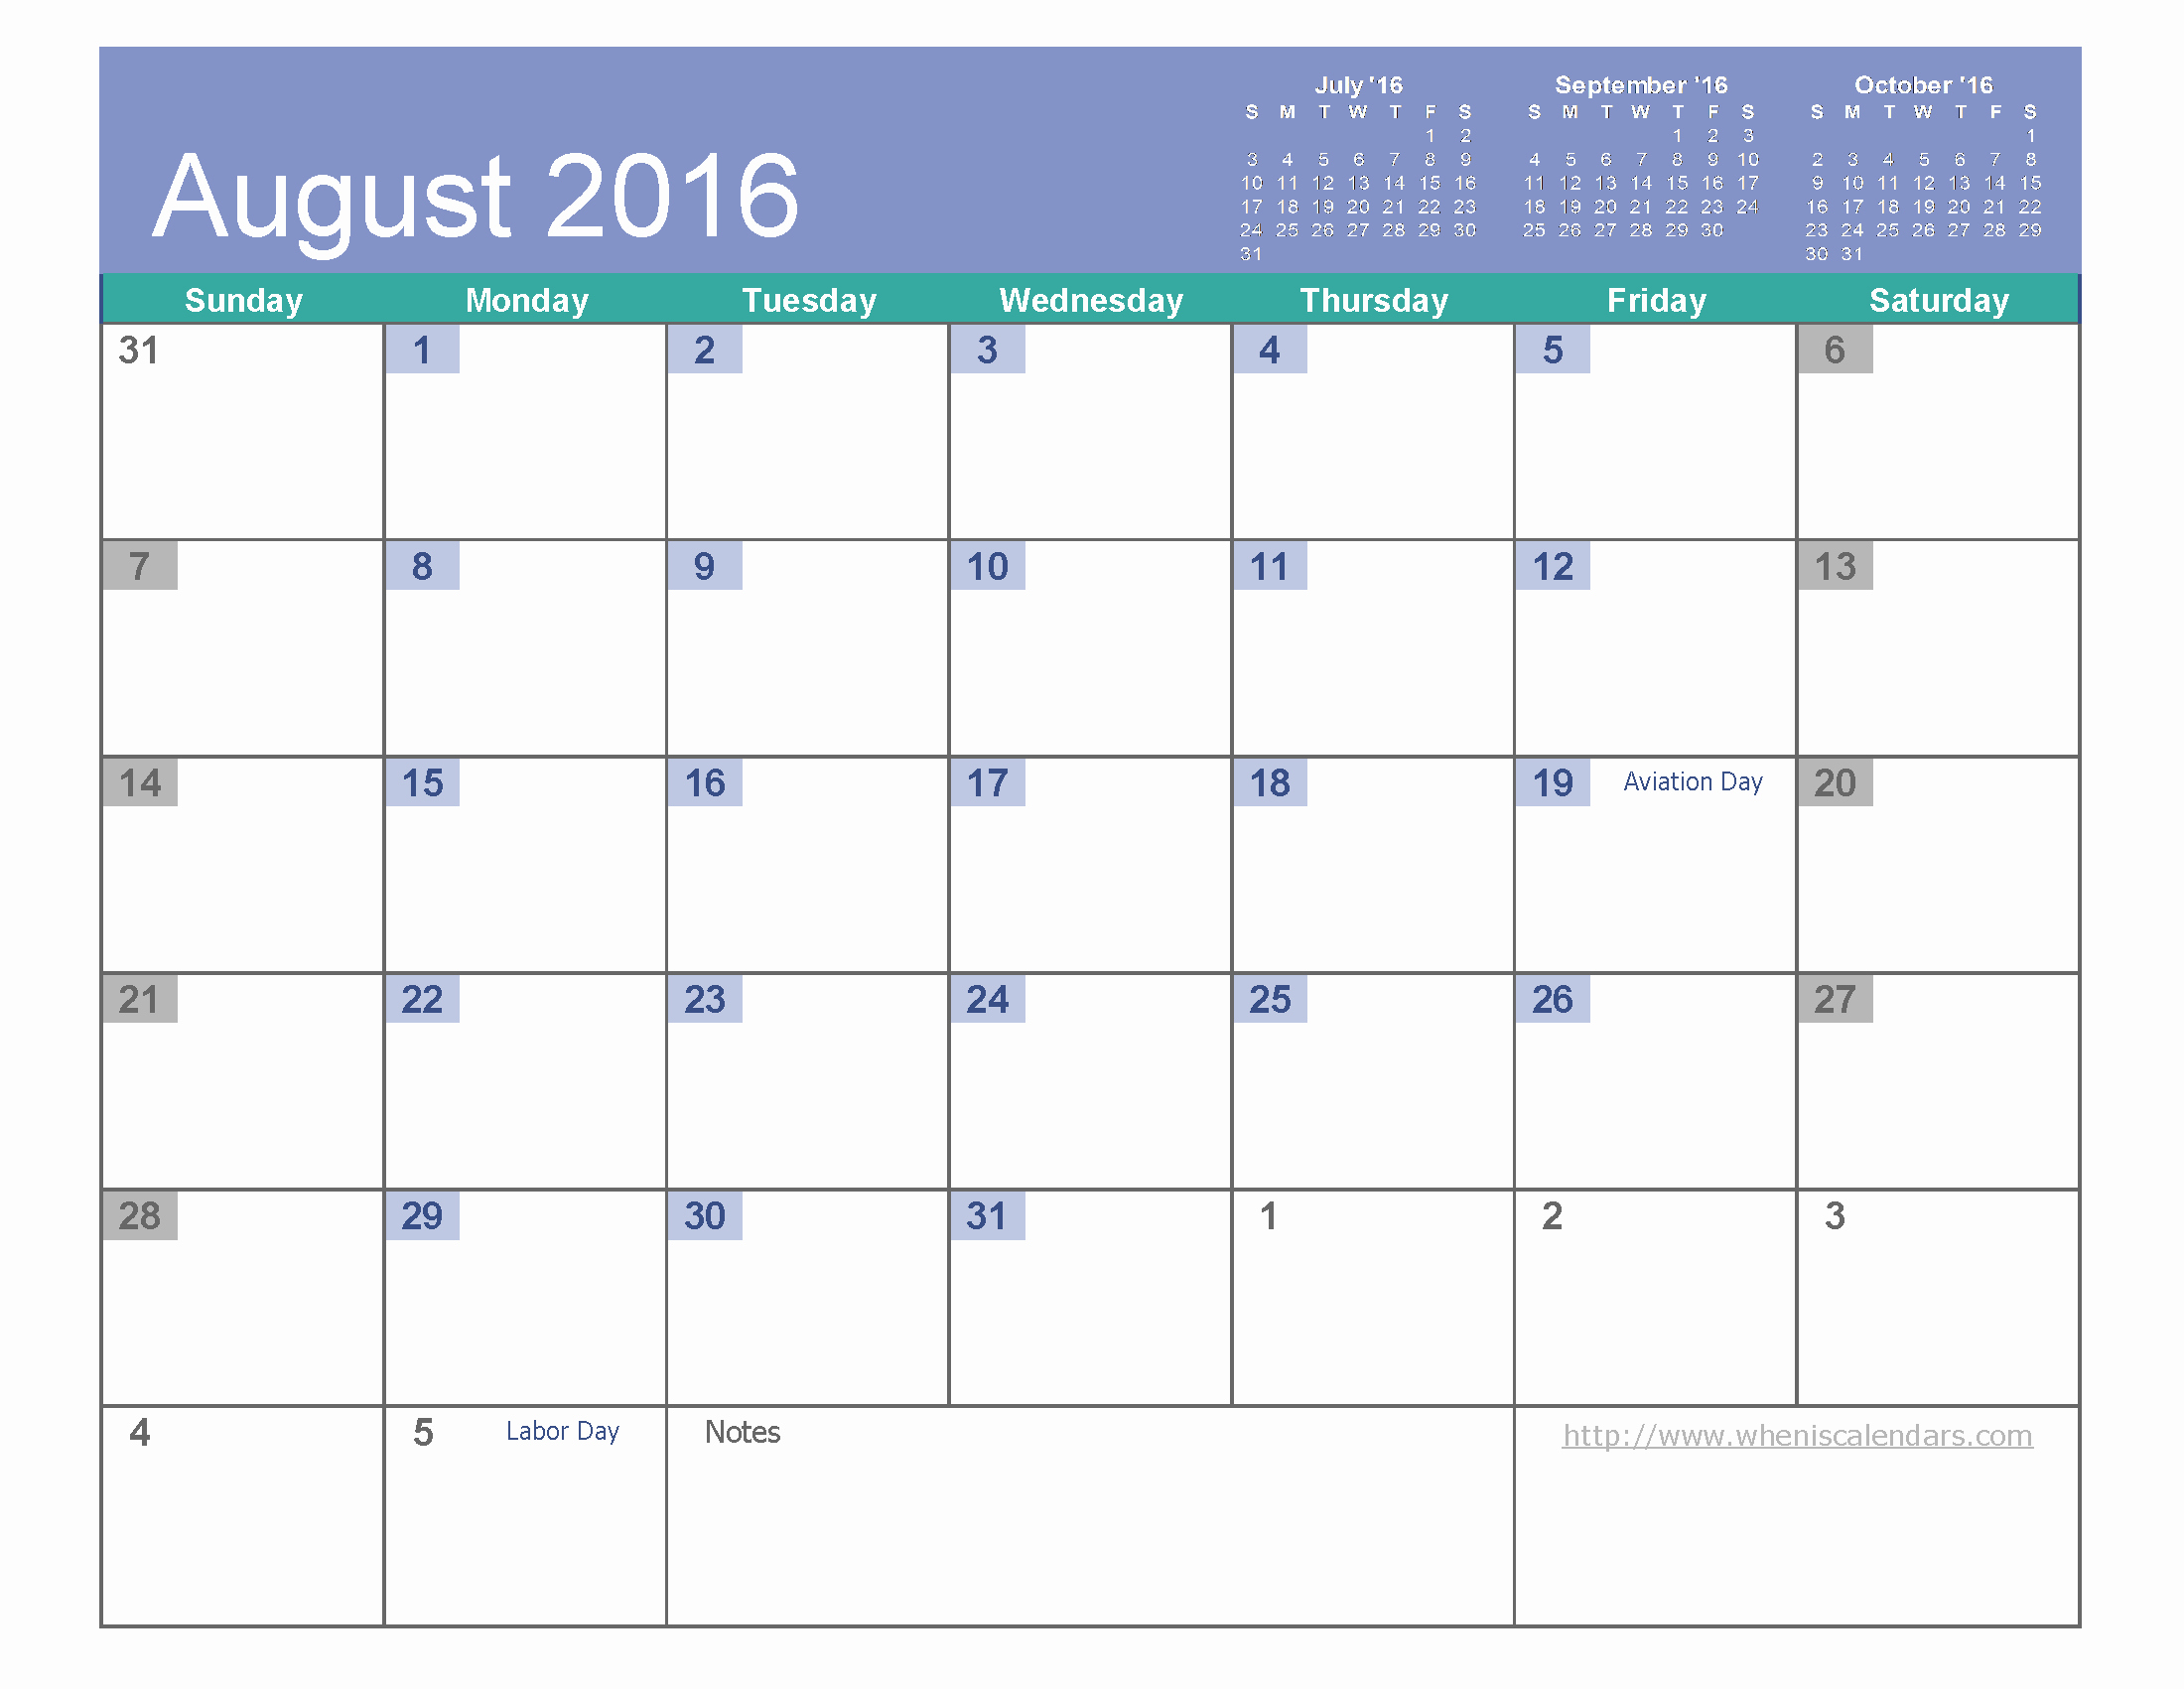 2016 Calendar Excel with Holidays Inspirational August 2016 Calendar Excel August2016 Excelcalendar